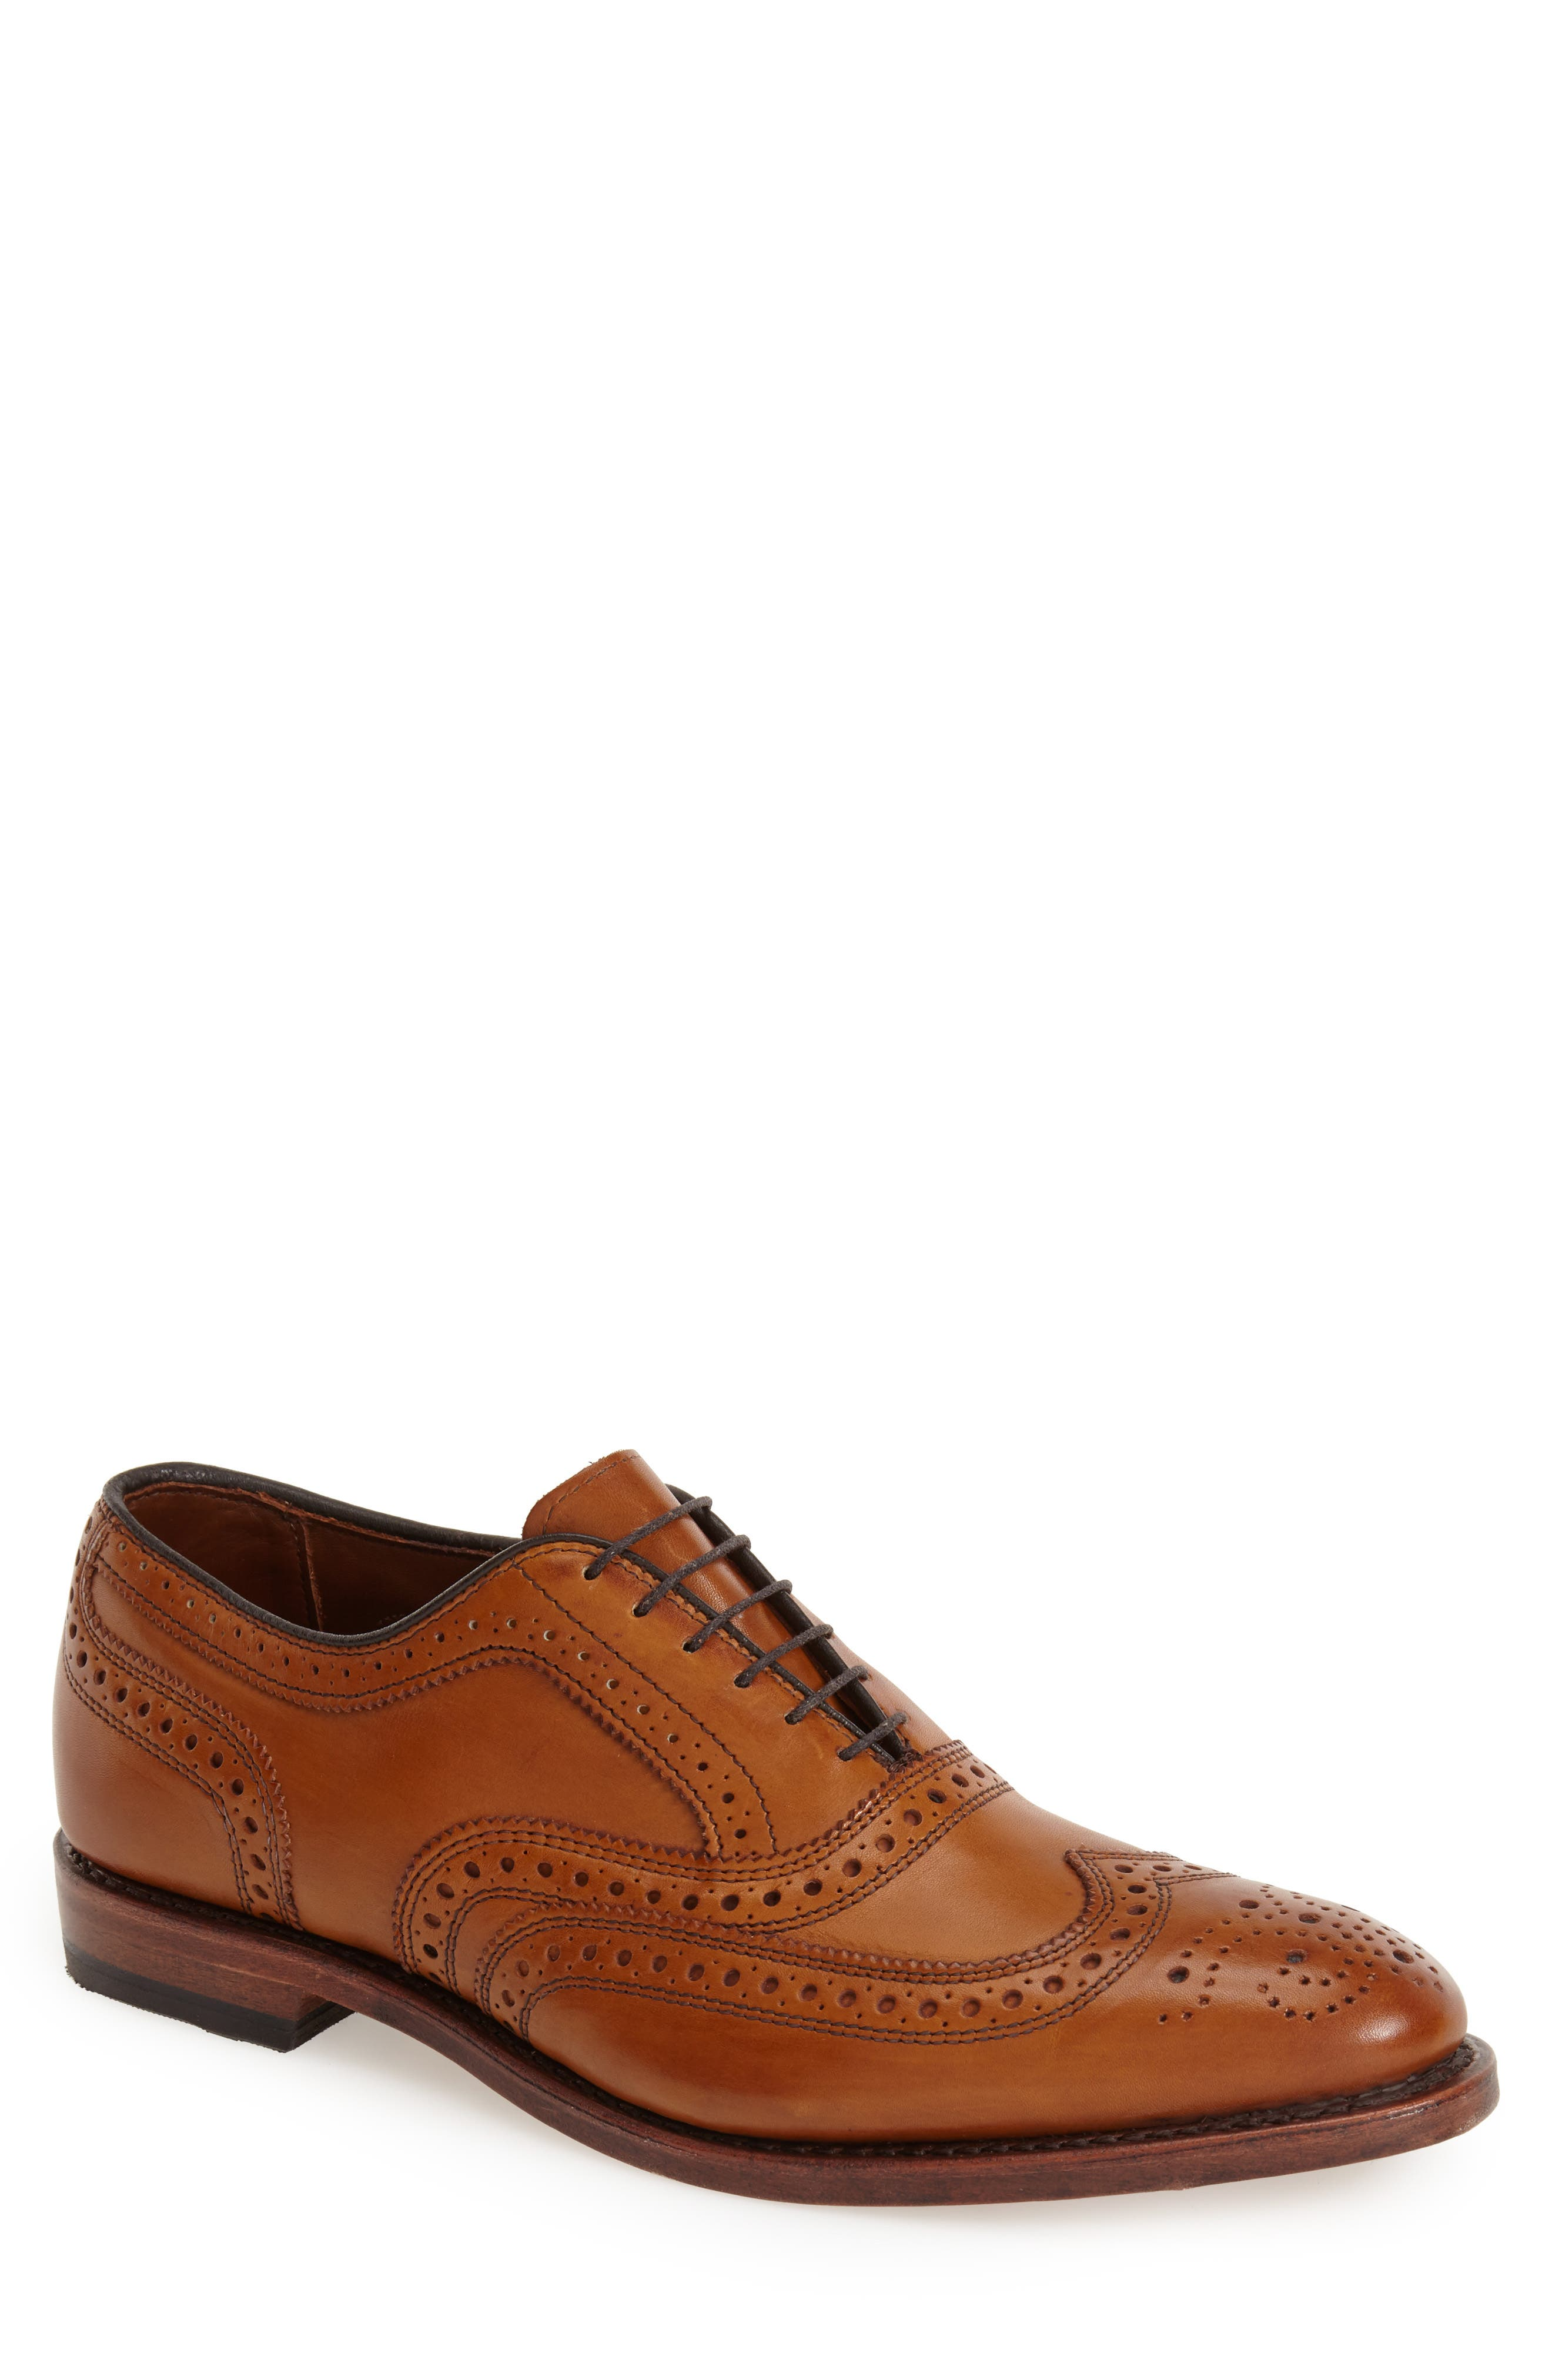 'McAllister' Wingtip,                             Alternate thumbnail 3, color,                             WALNUT LEATHER